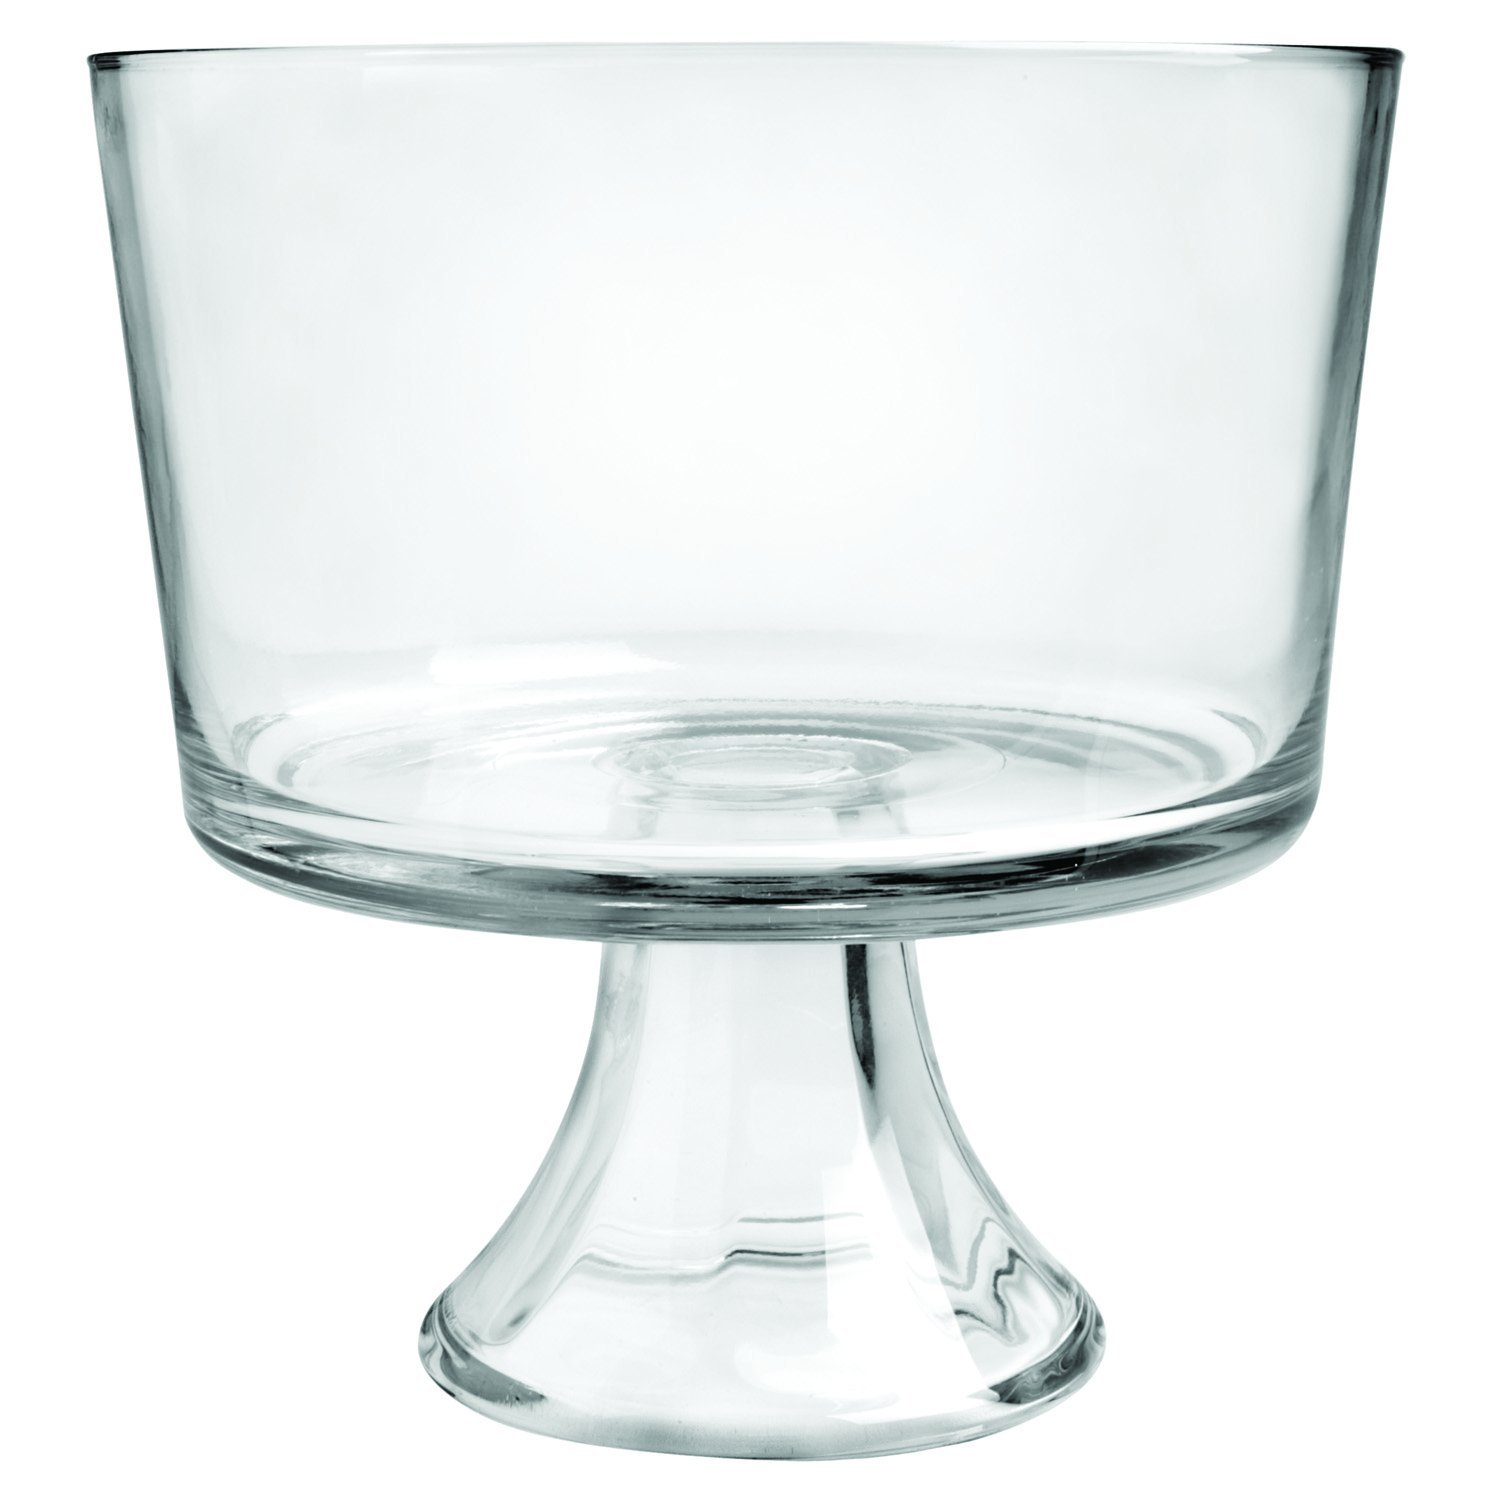 Amazon.com | Anchor Hocking Presence Trifle Footed Dessert Bowl ...